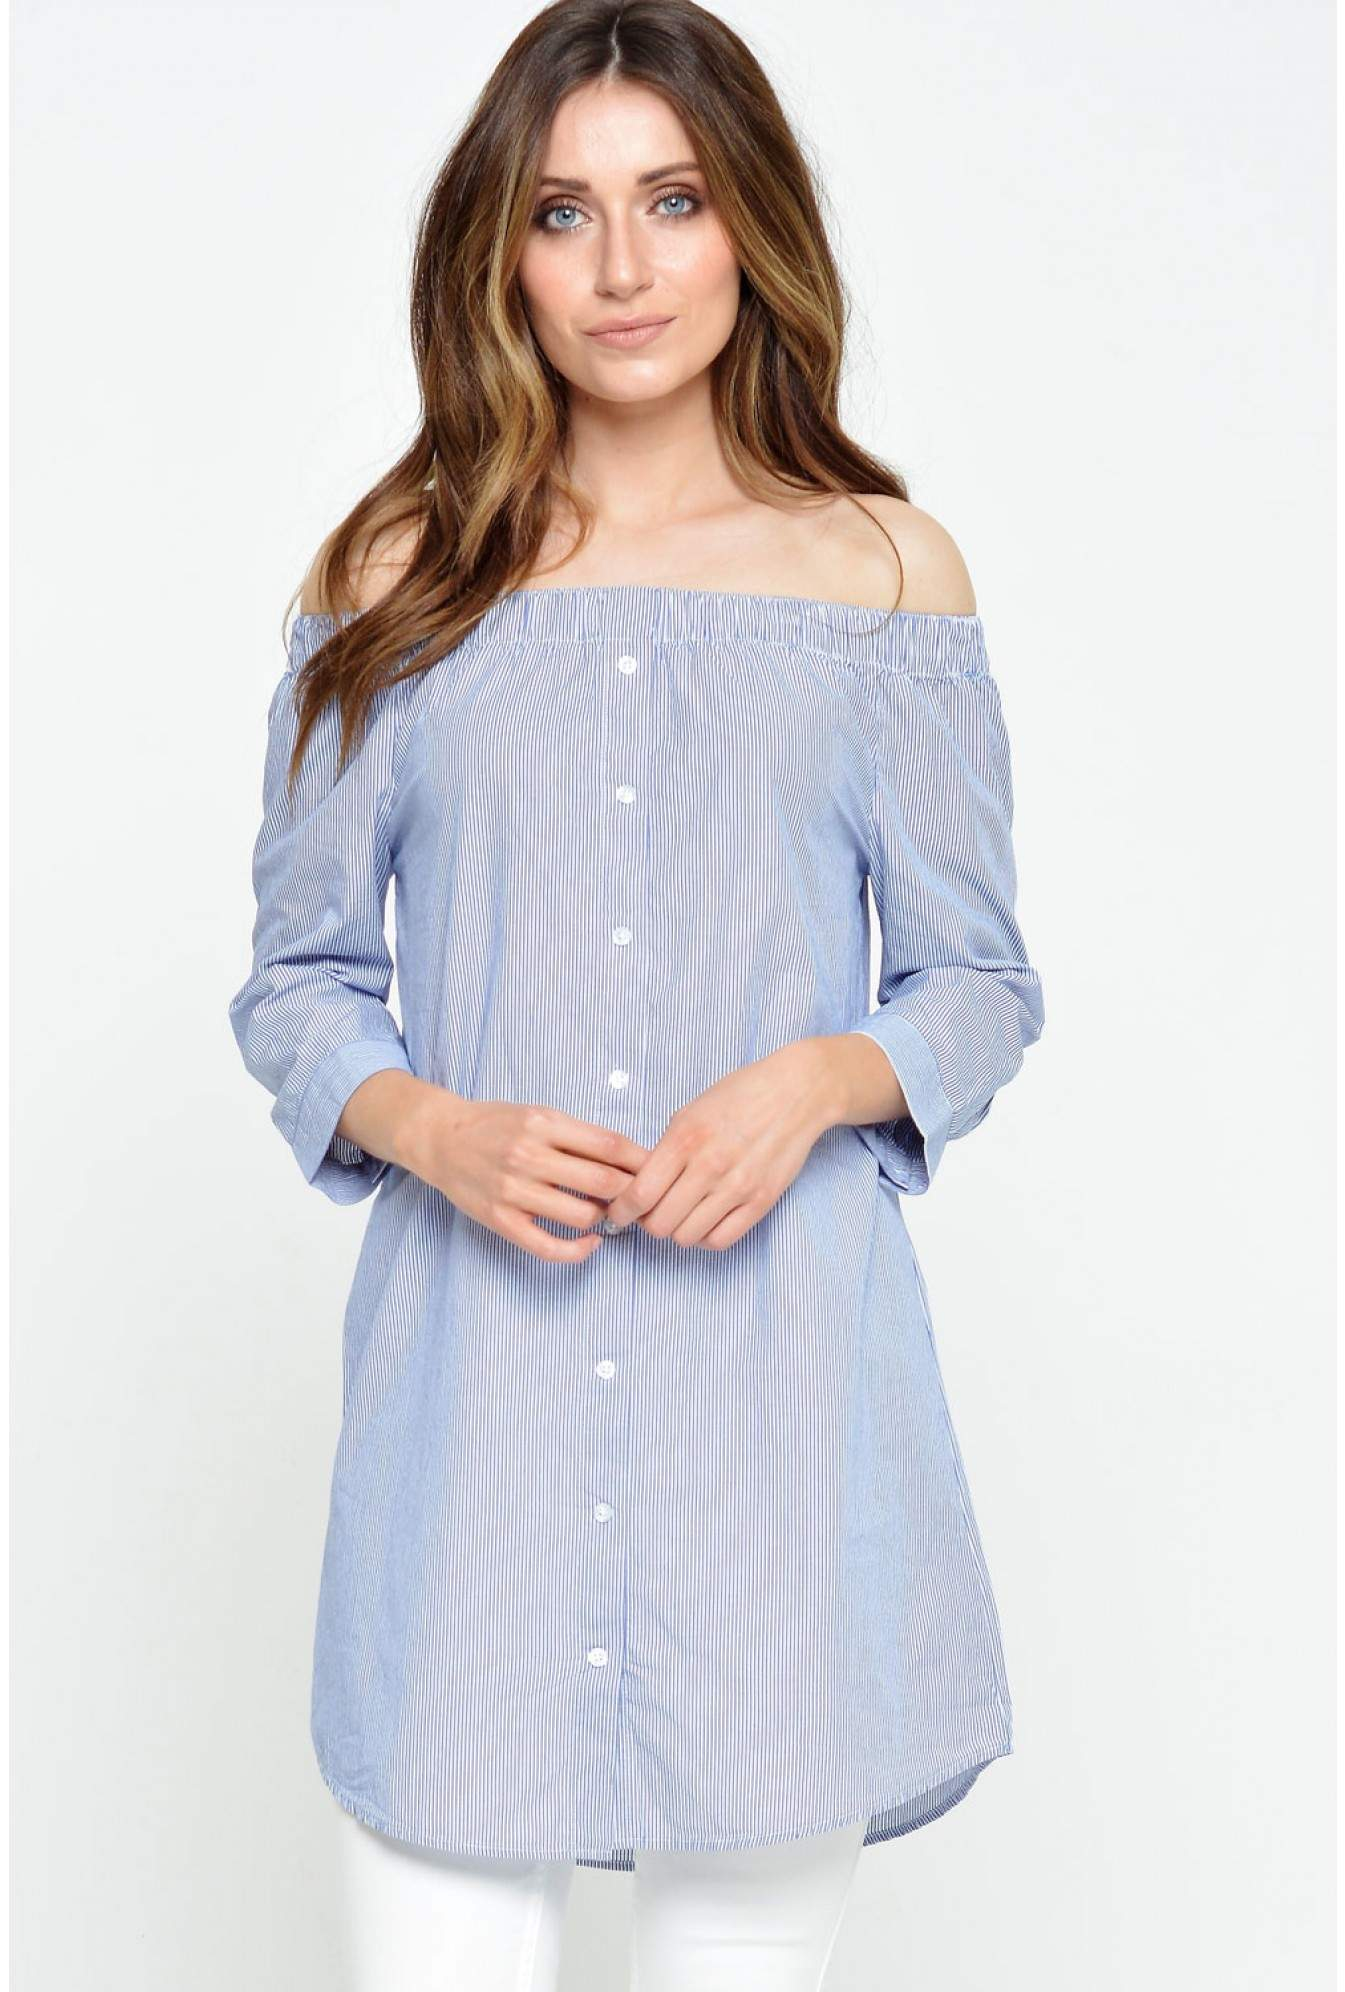 ab3a21ee76a7 Jacqueline De Yong Litzy Tiffany 3 4 Off Shoulder Tunic in Blue ...